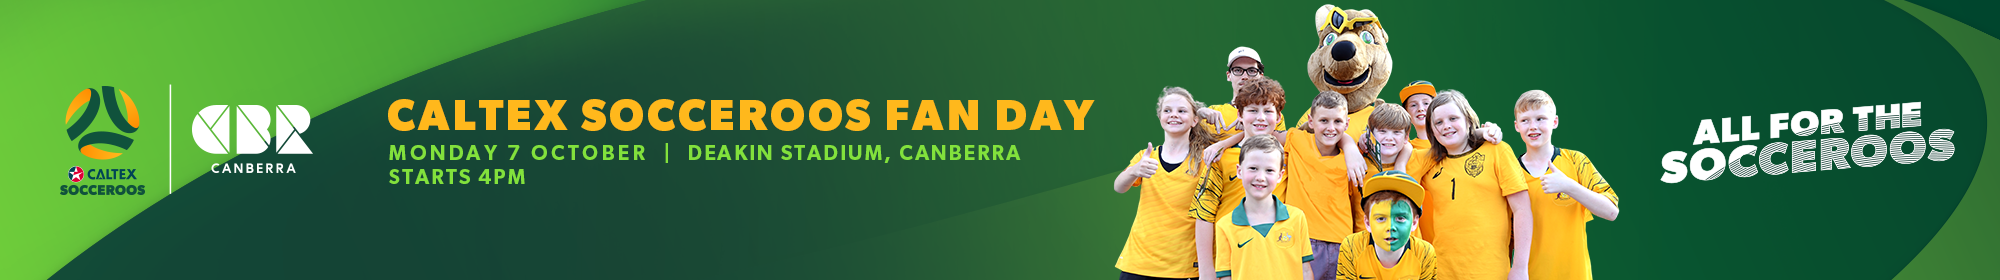 Socceroos-Fan-Day